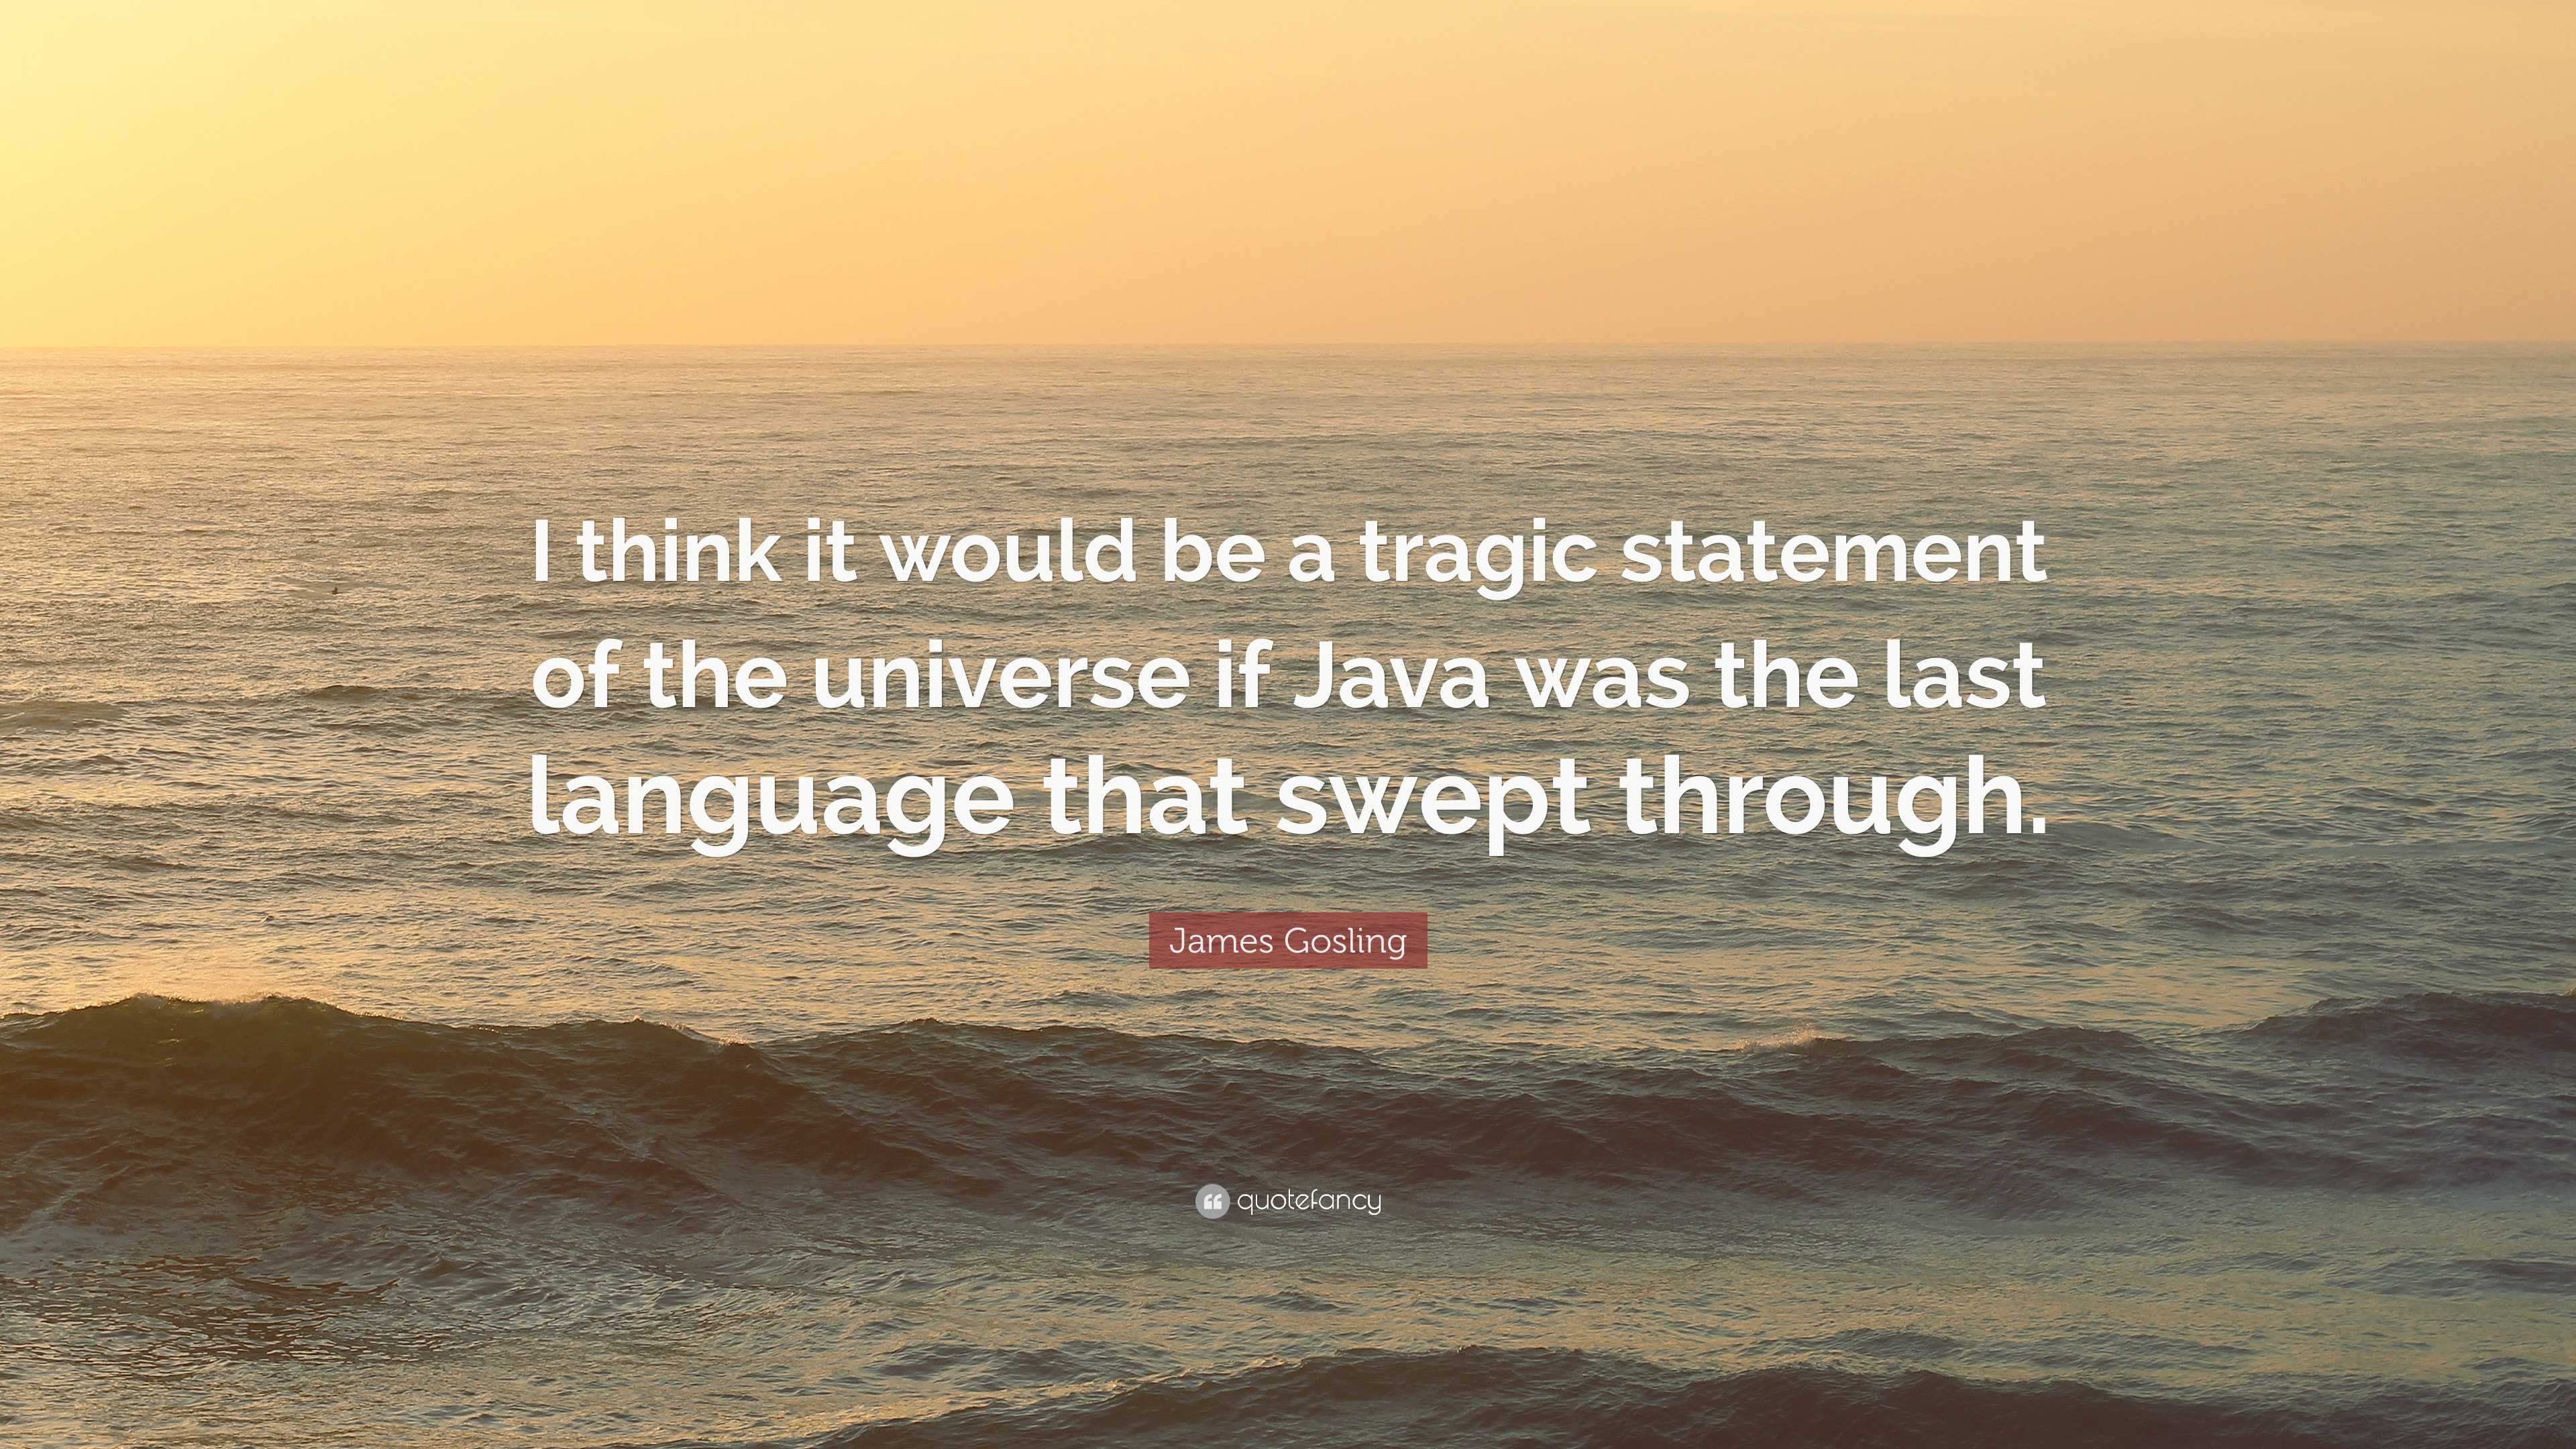 James gosling quote i think it would be a tragic statement of the